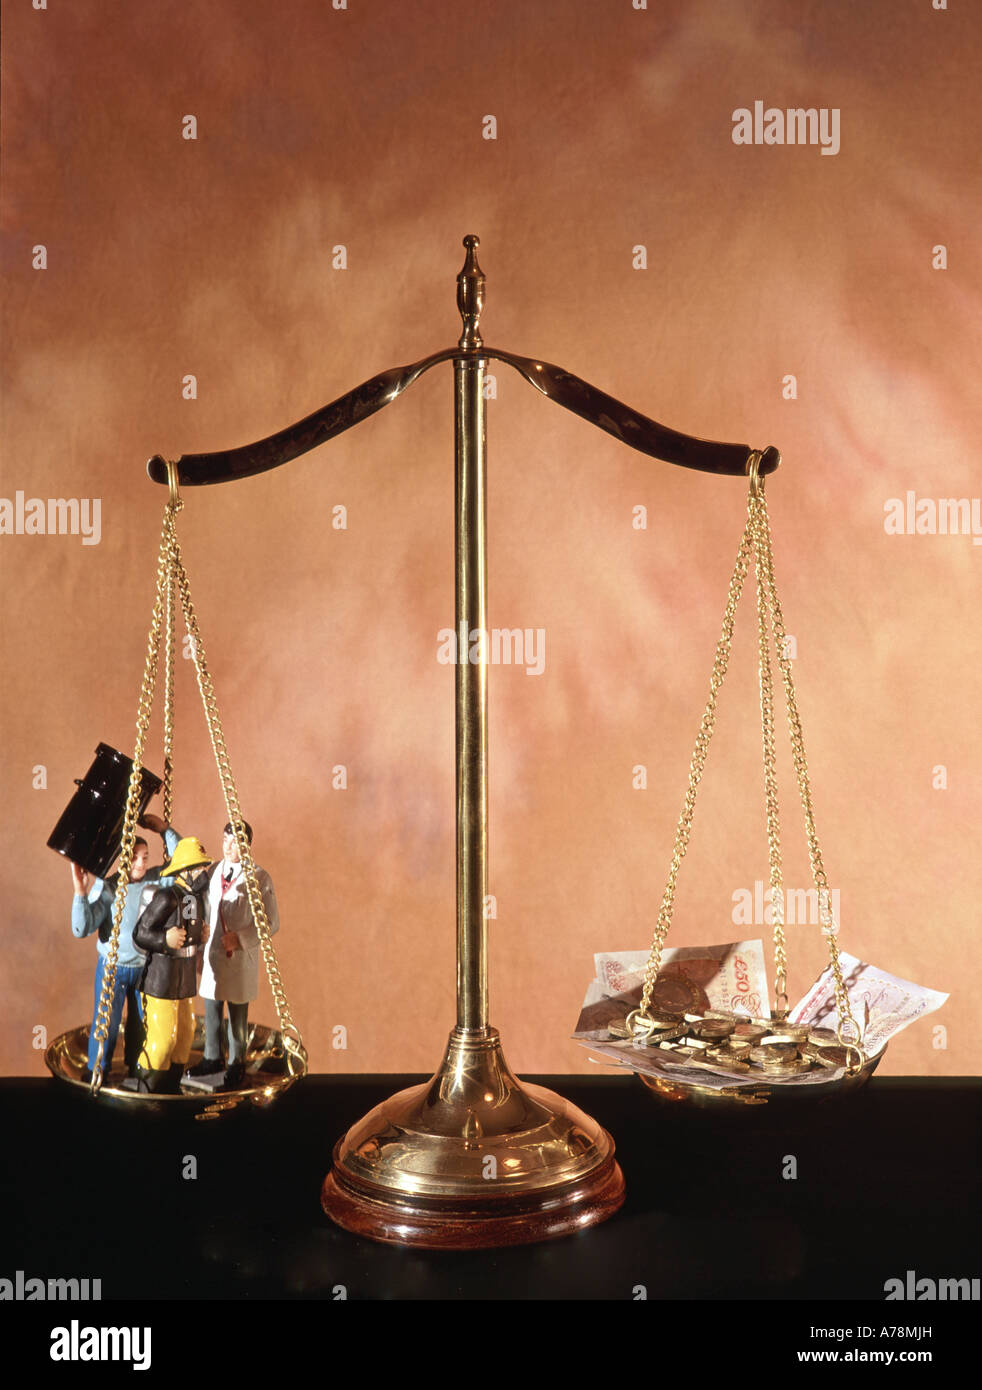 Pan balance set up as a concept image to illustrate the relationship between better public services against tax Stock Photo